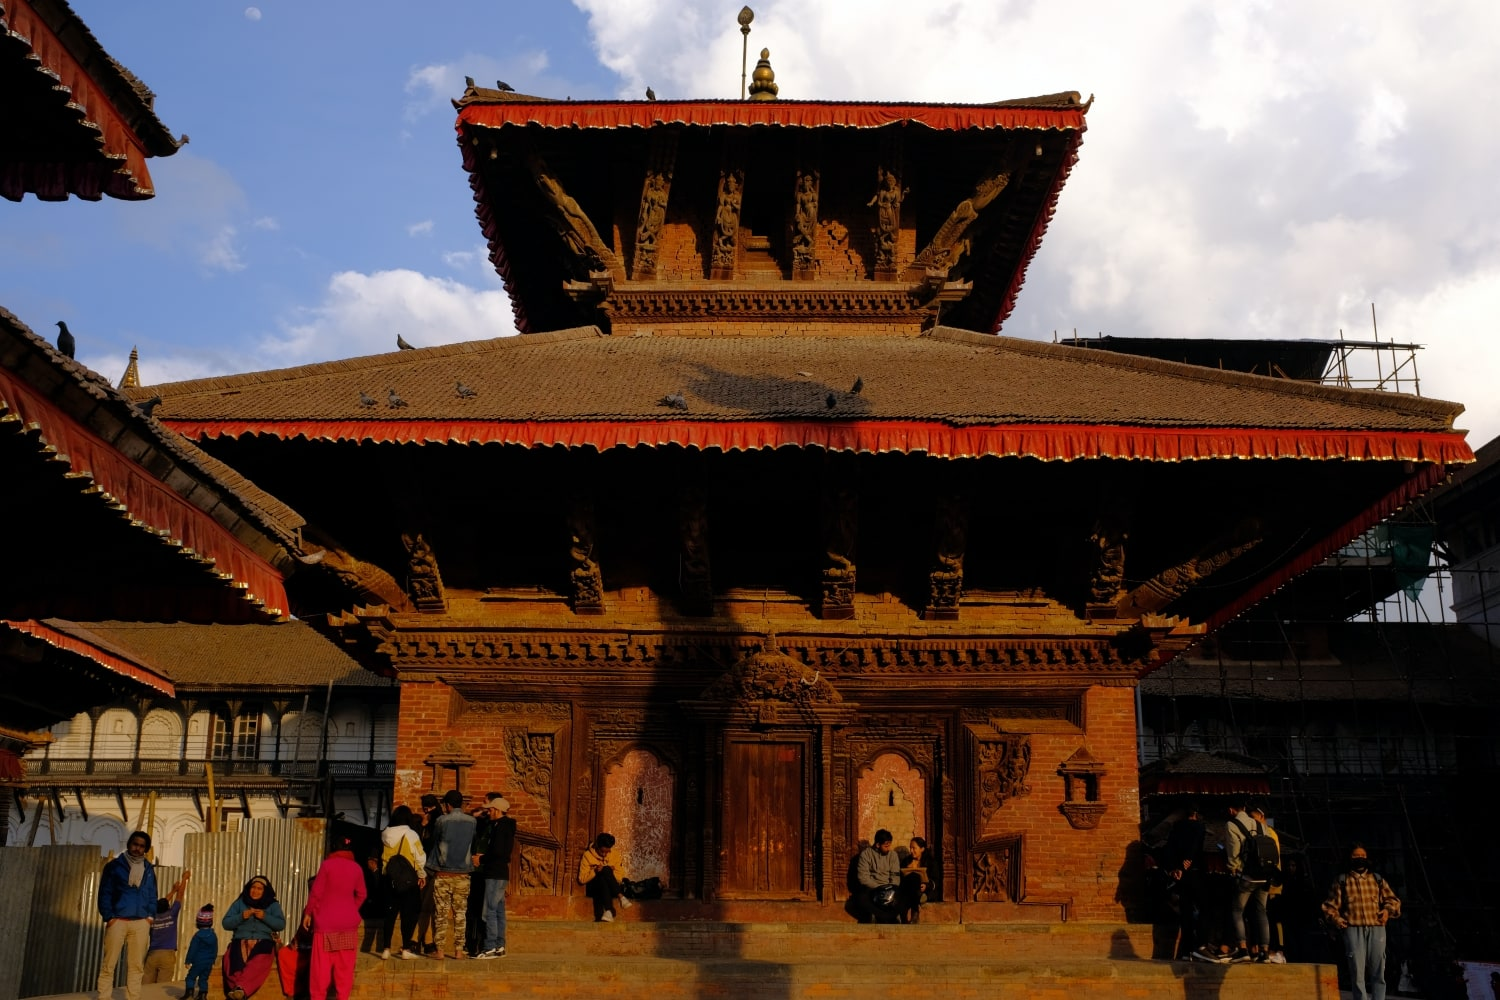 A Temple Photographed at Kathmandu Durbar Square